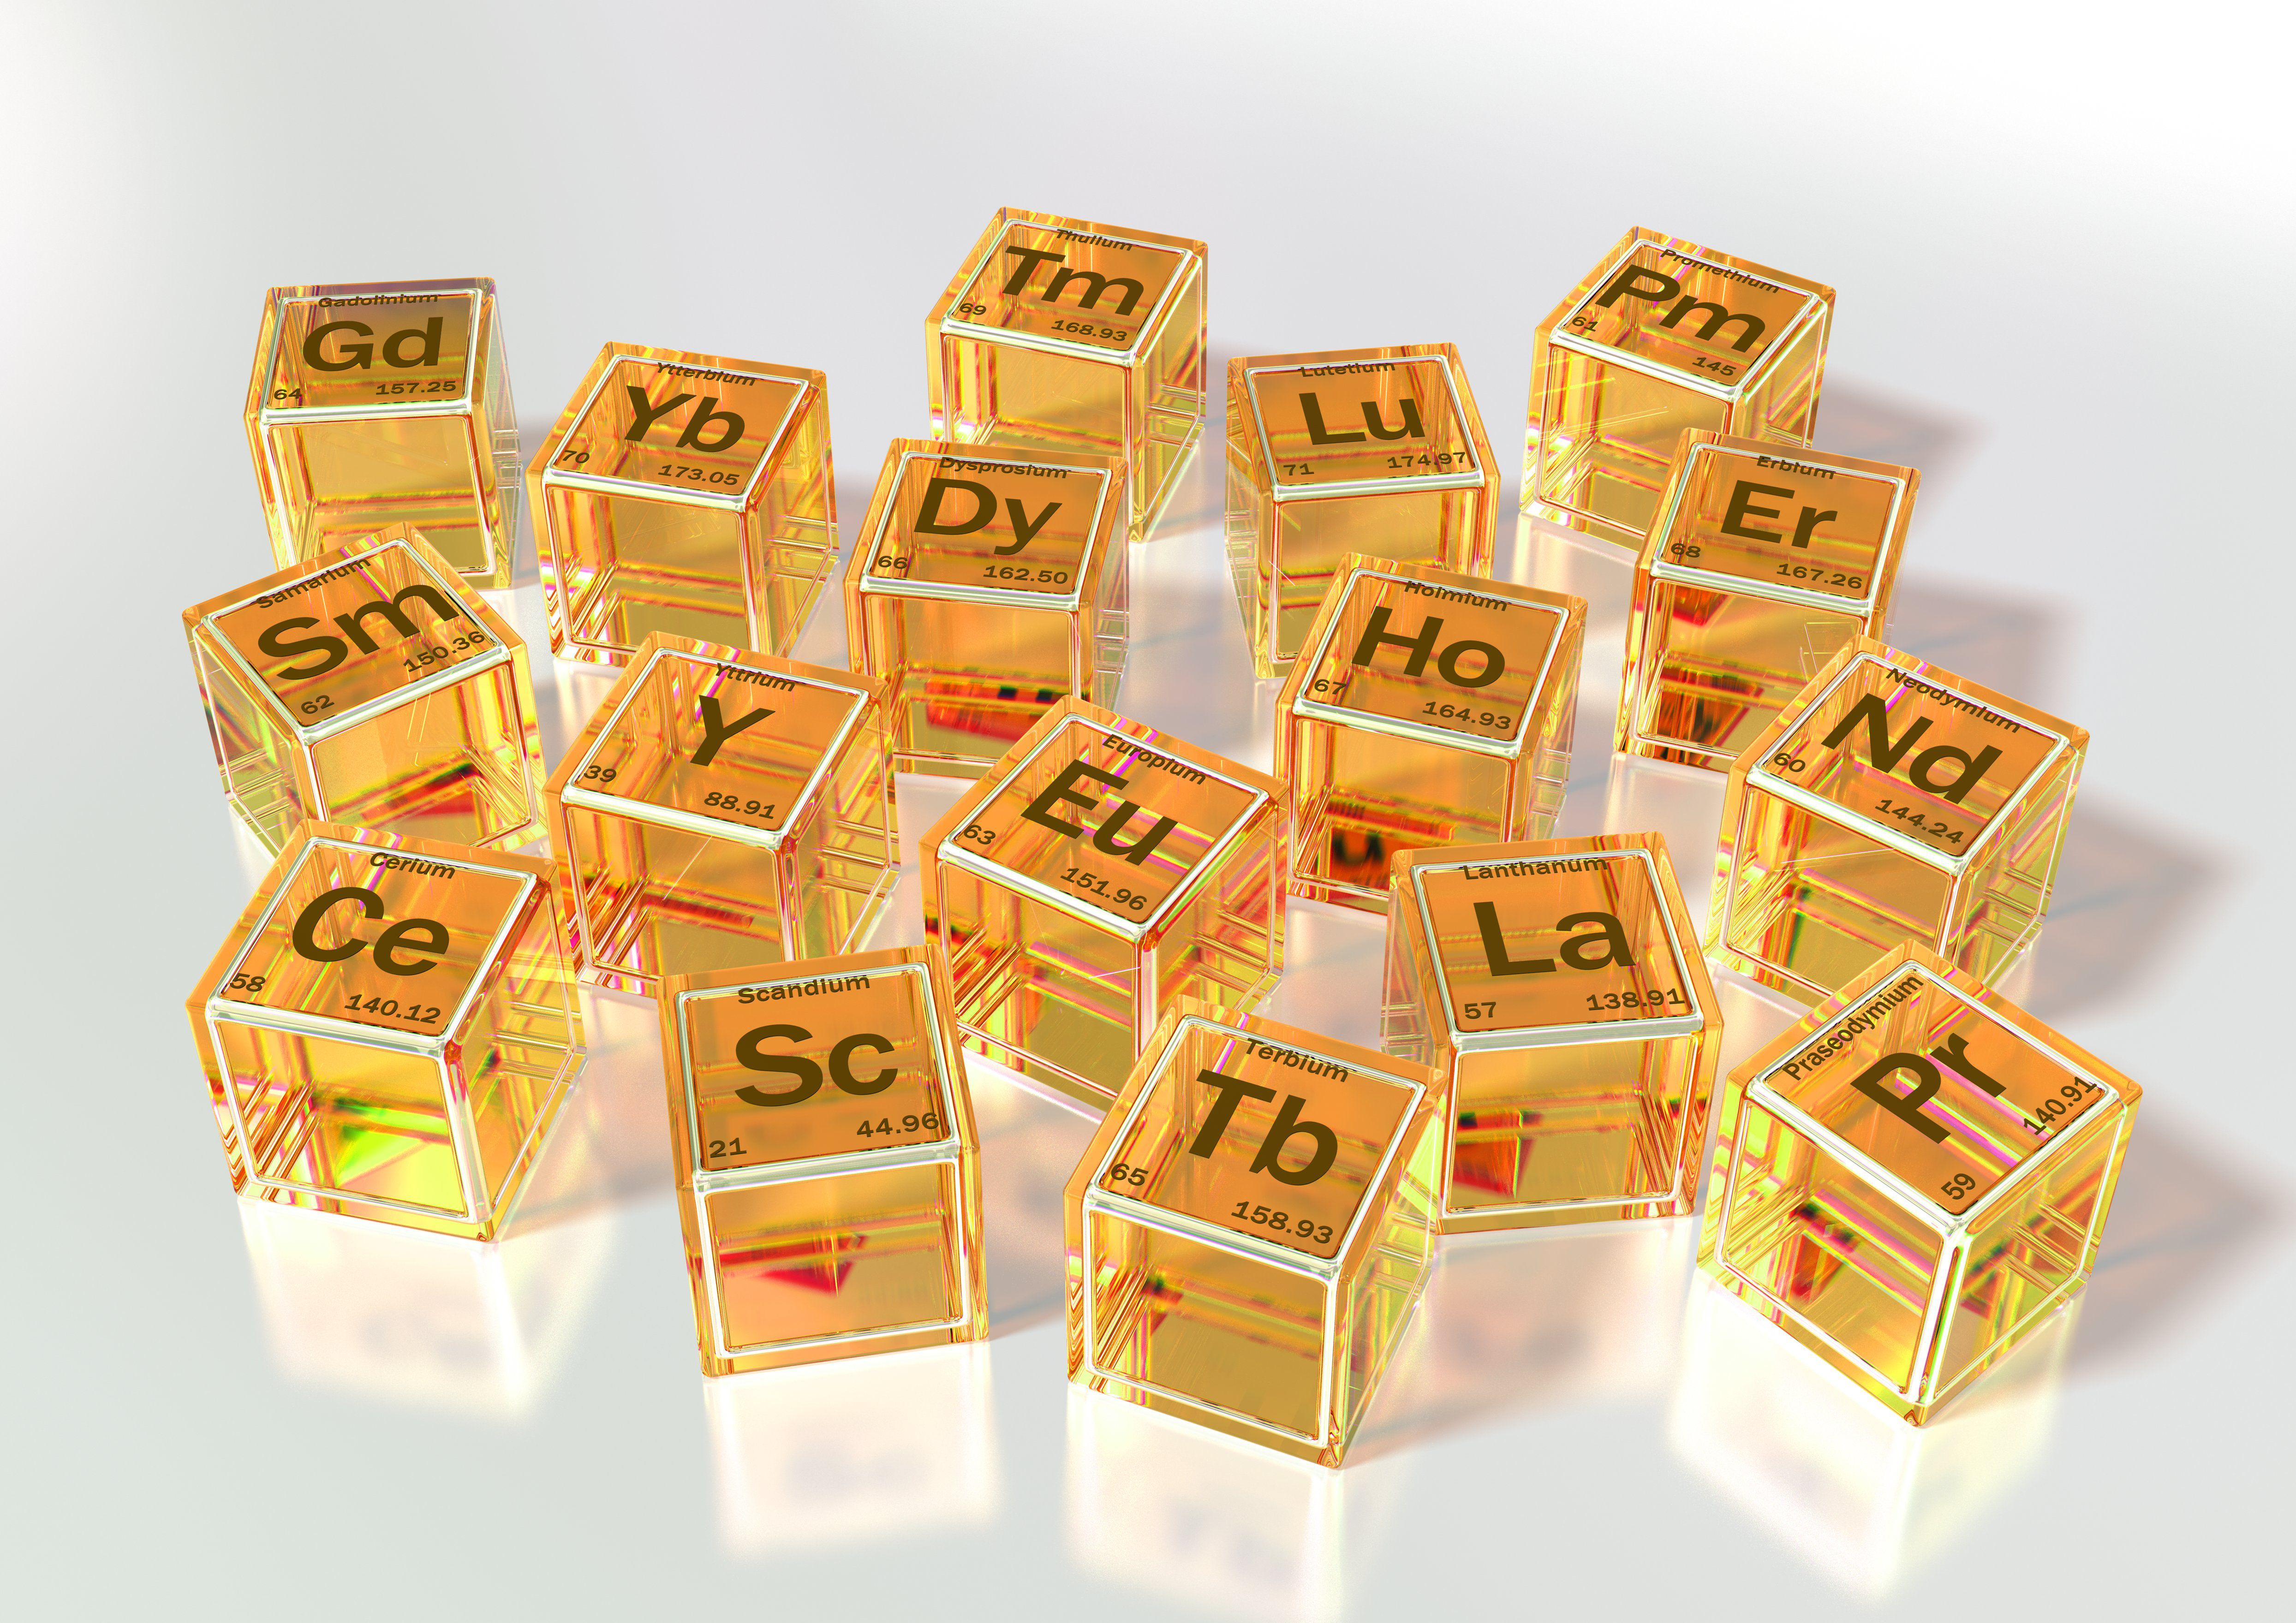 List of elements in the transition metal group list of elements in the lanthanide group colored periodic tables gamestrikefo Images